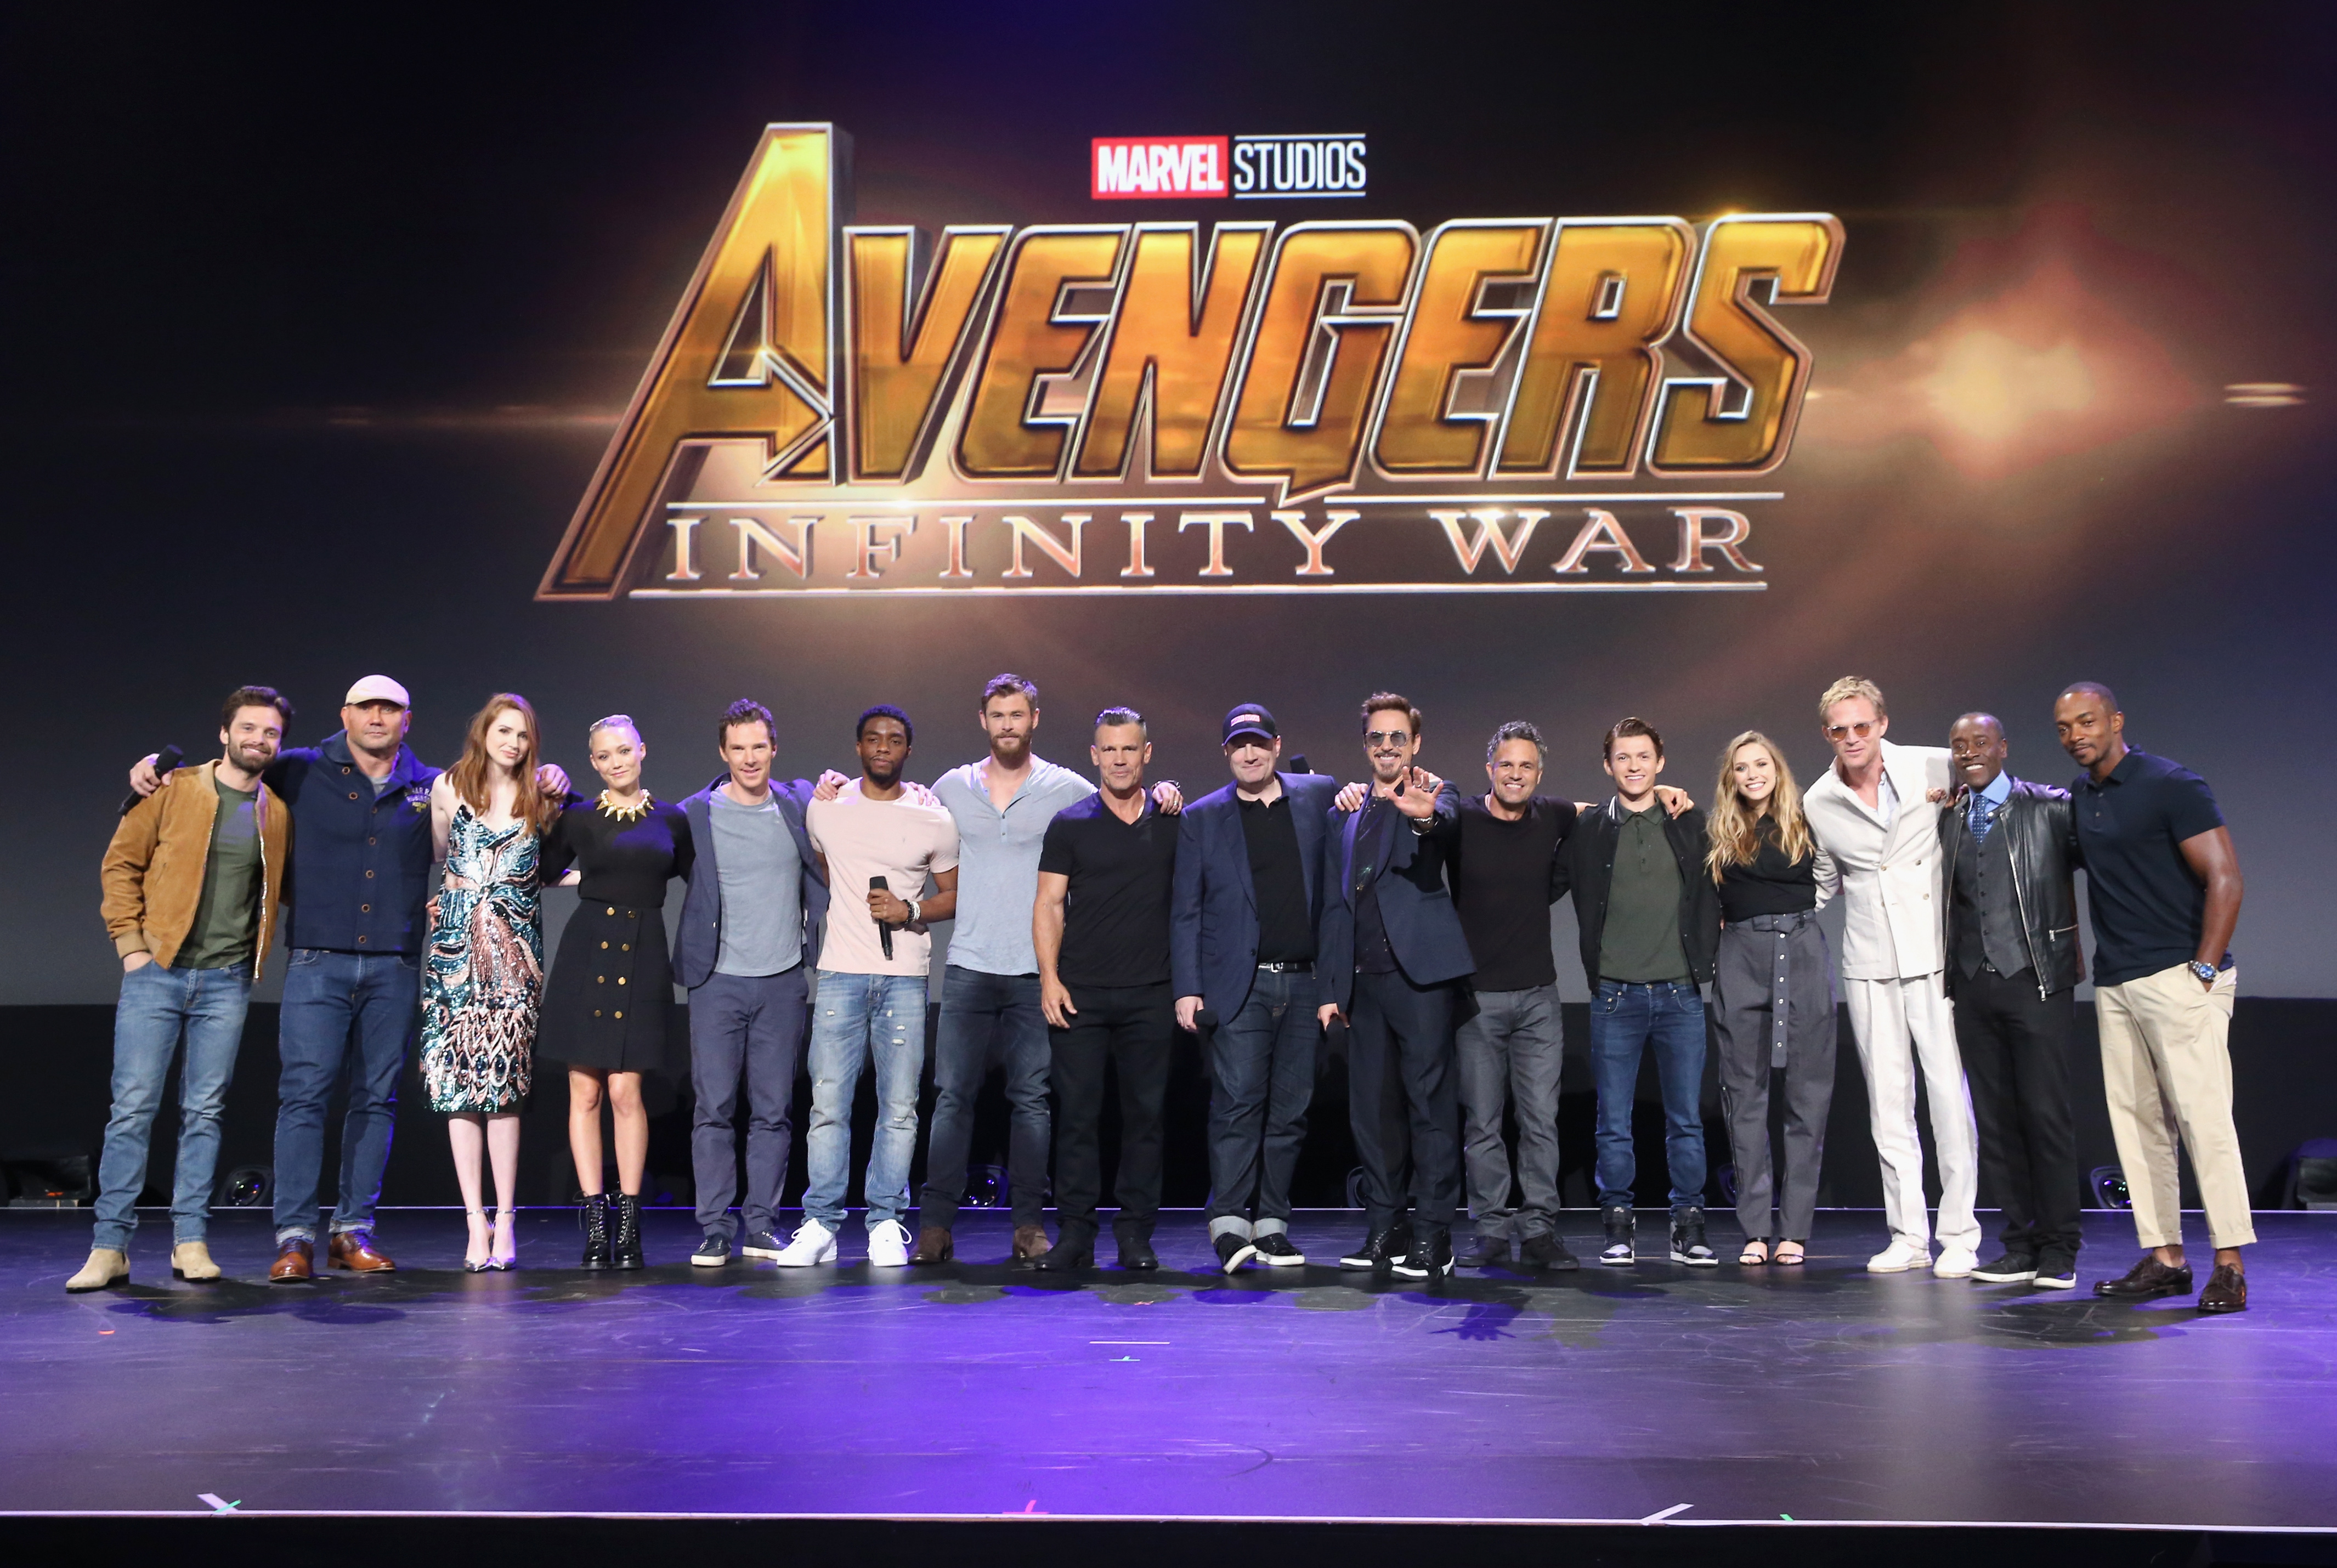 The cast of 'Avengers: Infinity War'